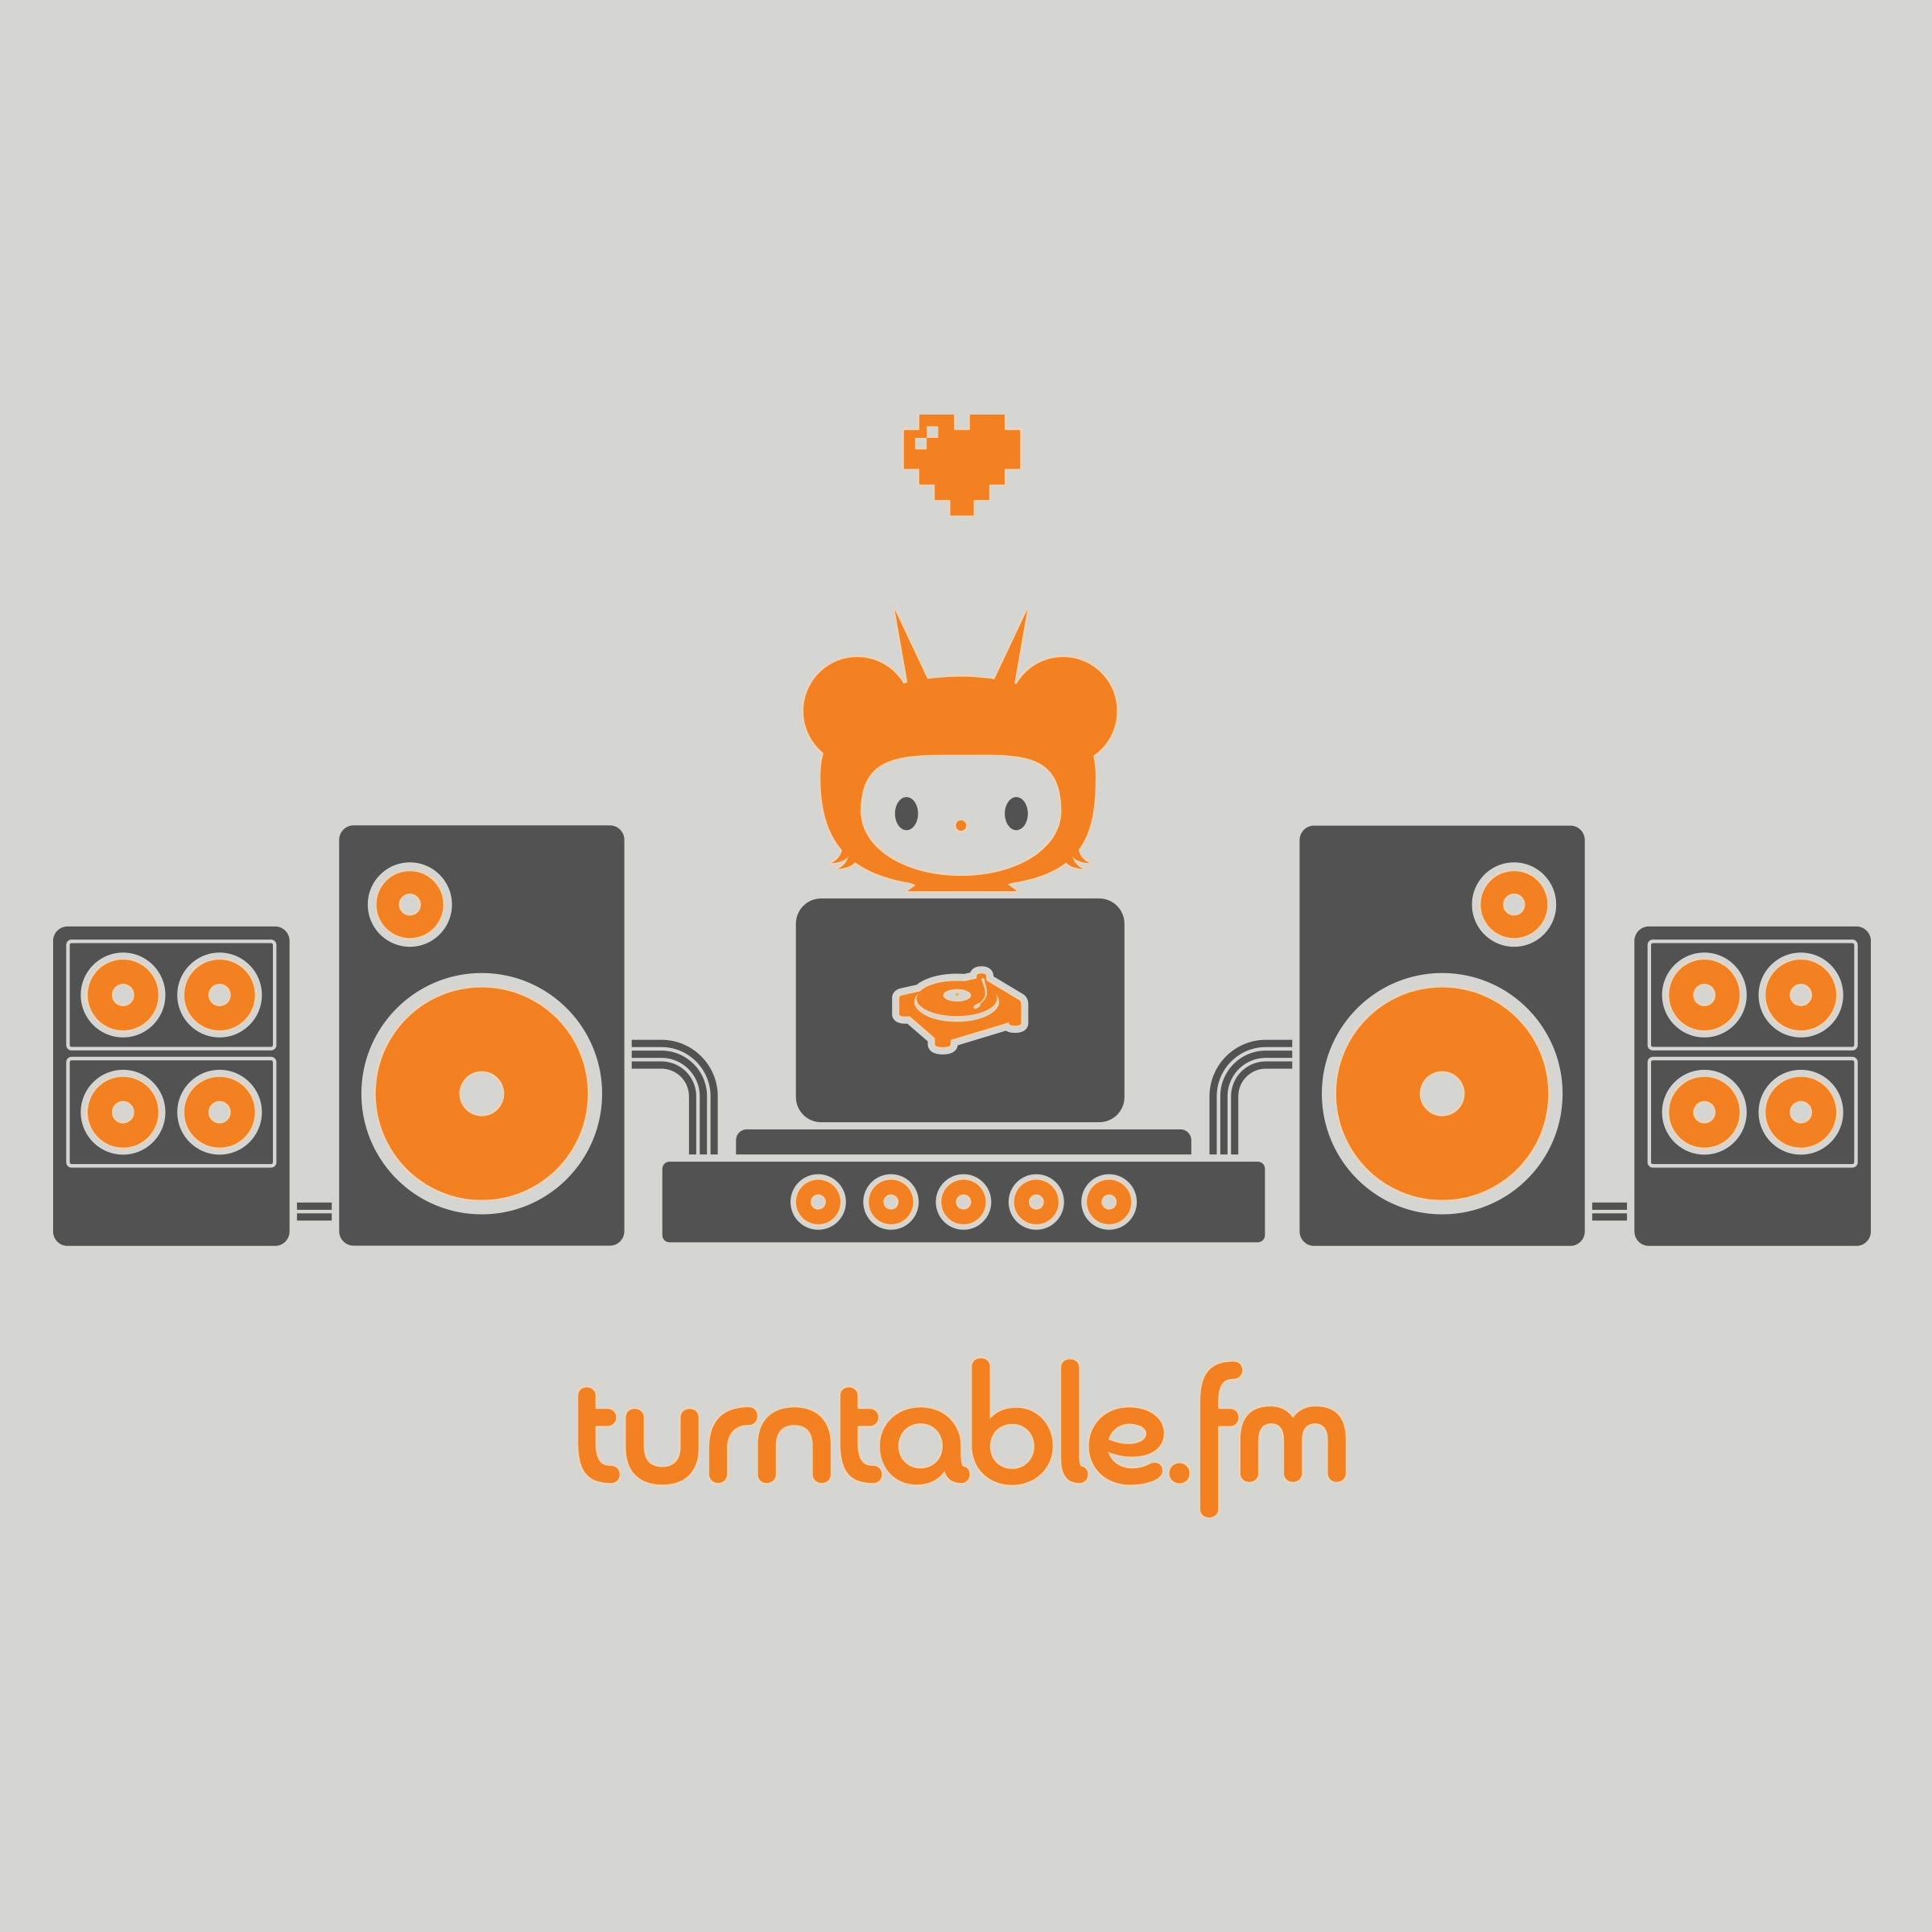 turntable.fm Detail